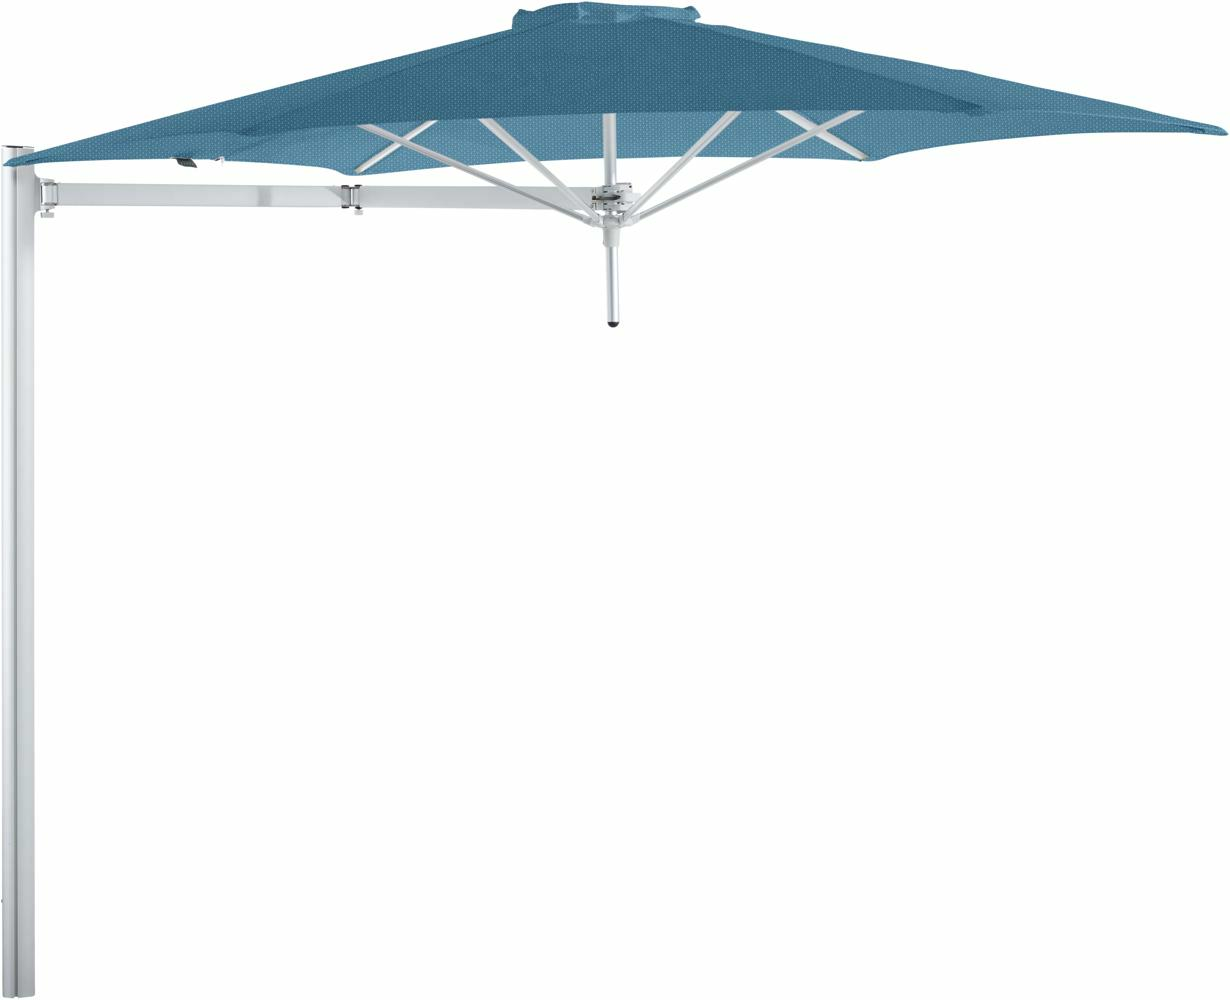 Paraflex cantilever umbrella round 3 m with Adriatic fabric and a Neo arm